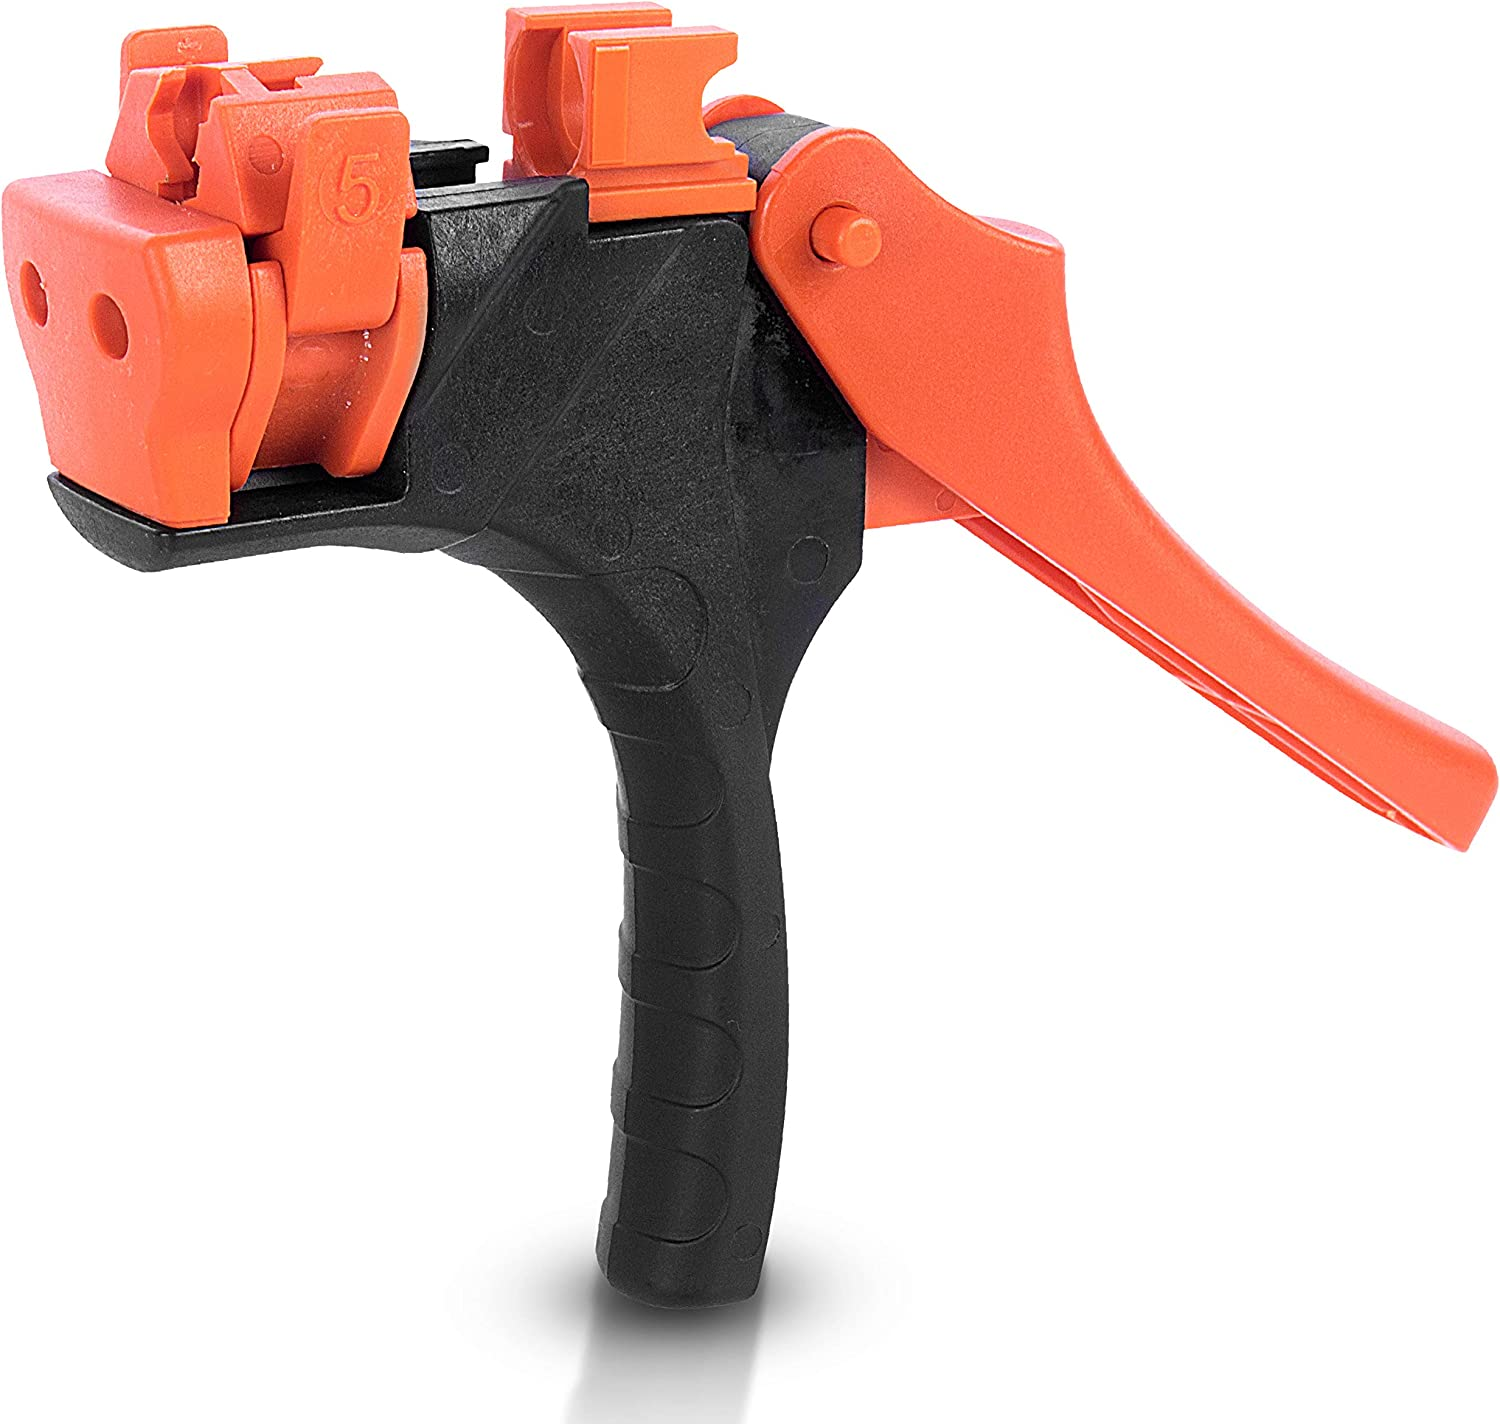 AL-MAGOR Talli Grip TG Garden Tool: Gun for Inserting Components - Connectors & Drippers into Micro-Pipes for Irrigation Pipes with Ease - Model 700011